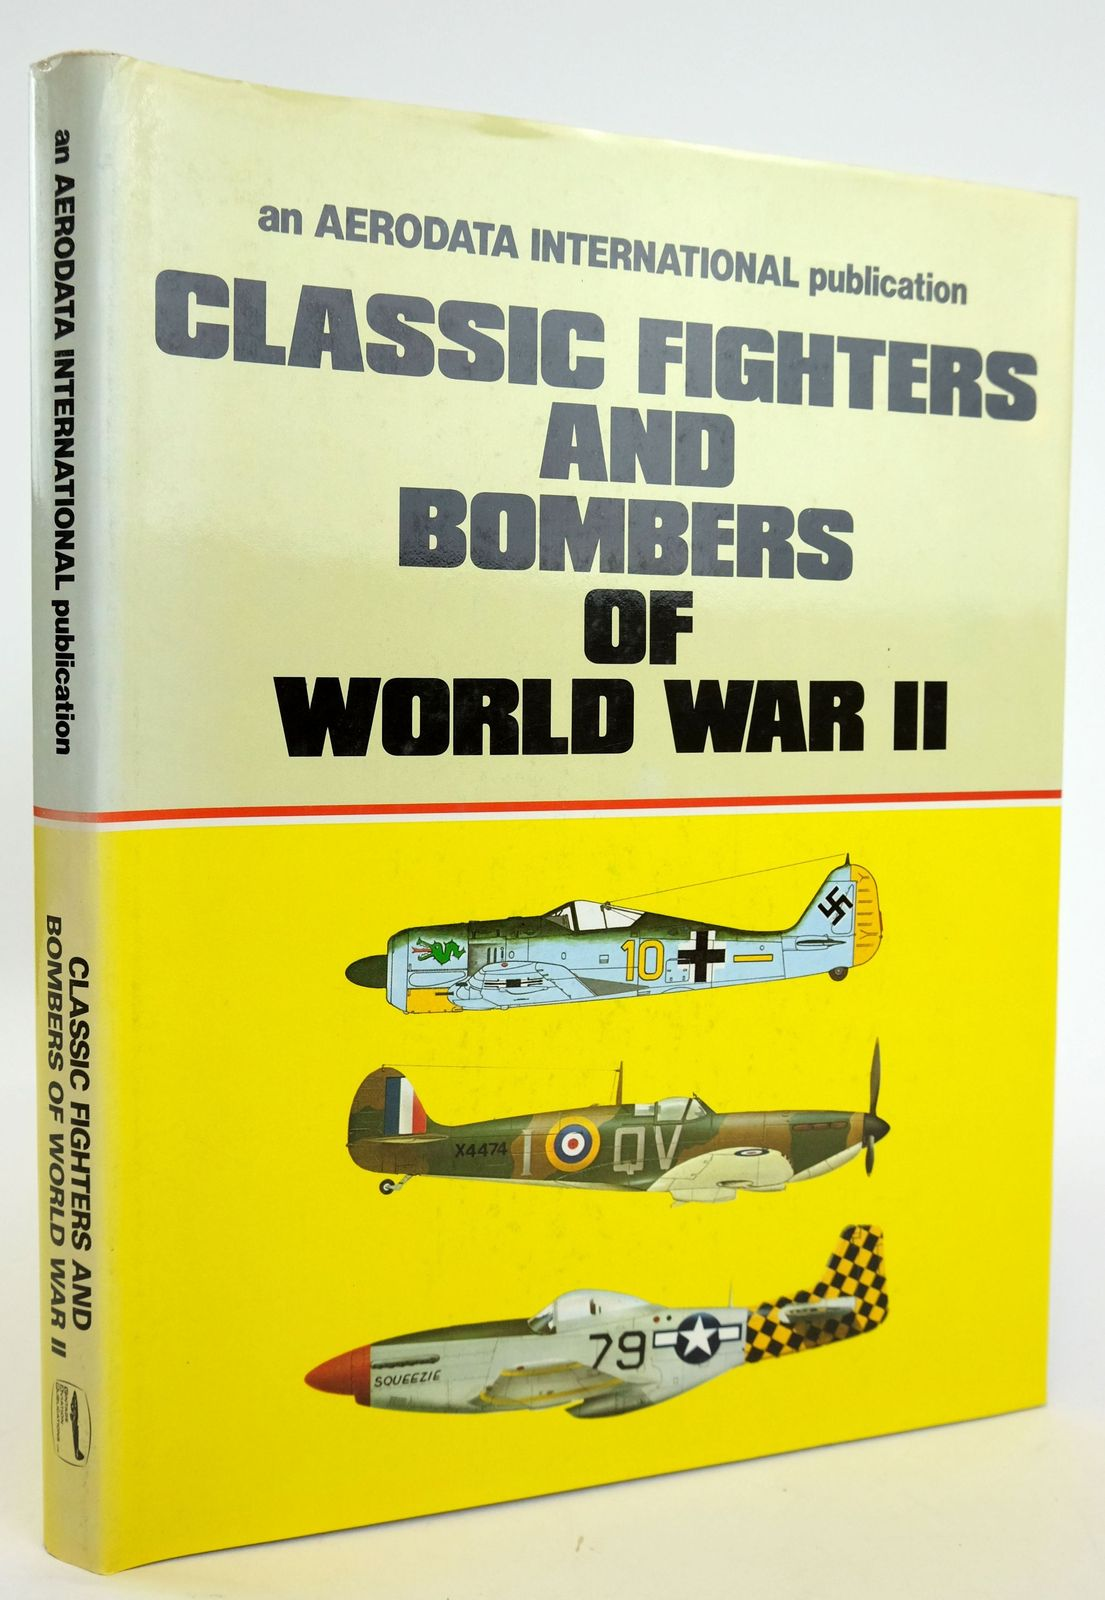 Photo of CLASSIC FIGHTERS AND BOMBERS OF WORLD WAR II written by Cooksley, Peter G. et al, published by Aerodata International (STOCK CODE: 1820142)  for sale by Stella & Rose's Books